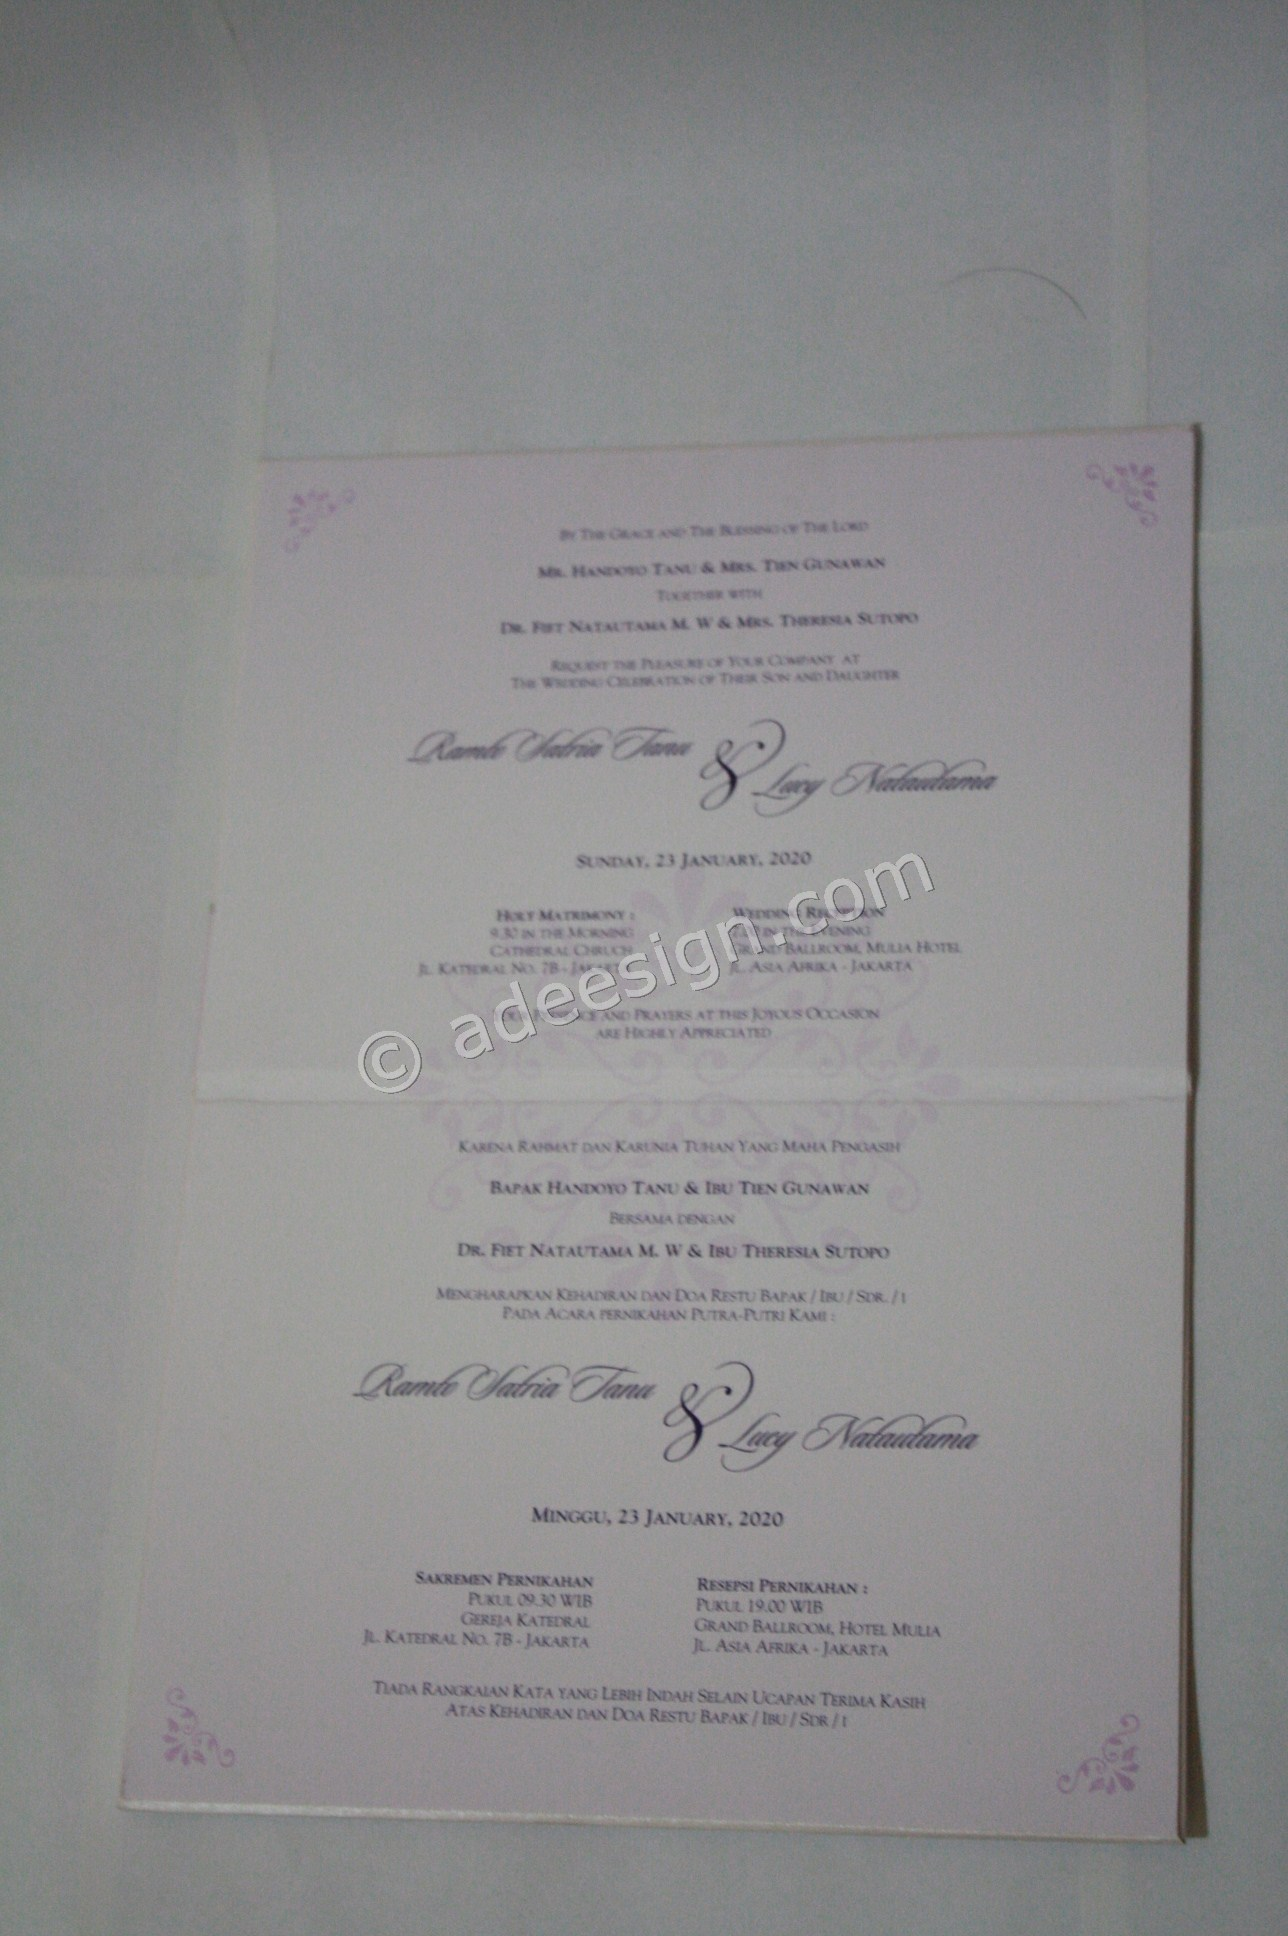 Undangan Pernikahan Hardcover Vonny dan Ferie 5 - Membuat Wedding Invitations Simple di Dr. Sutomo